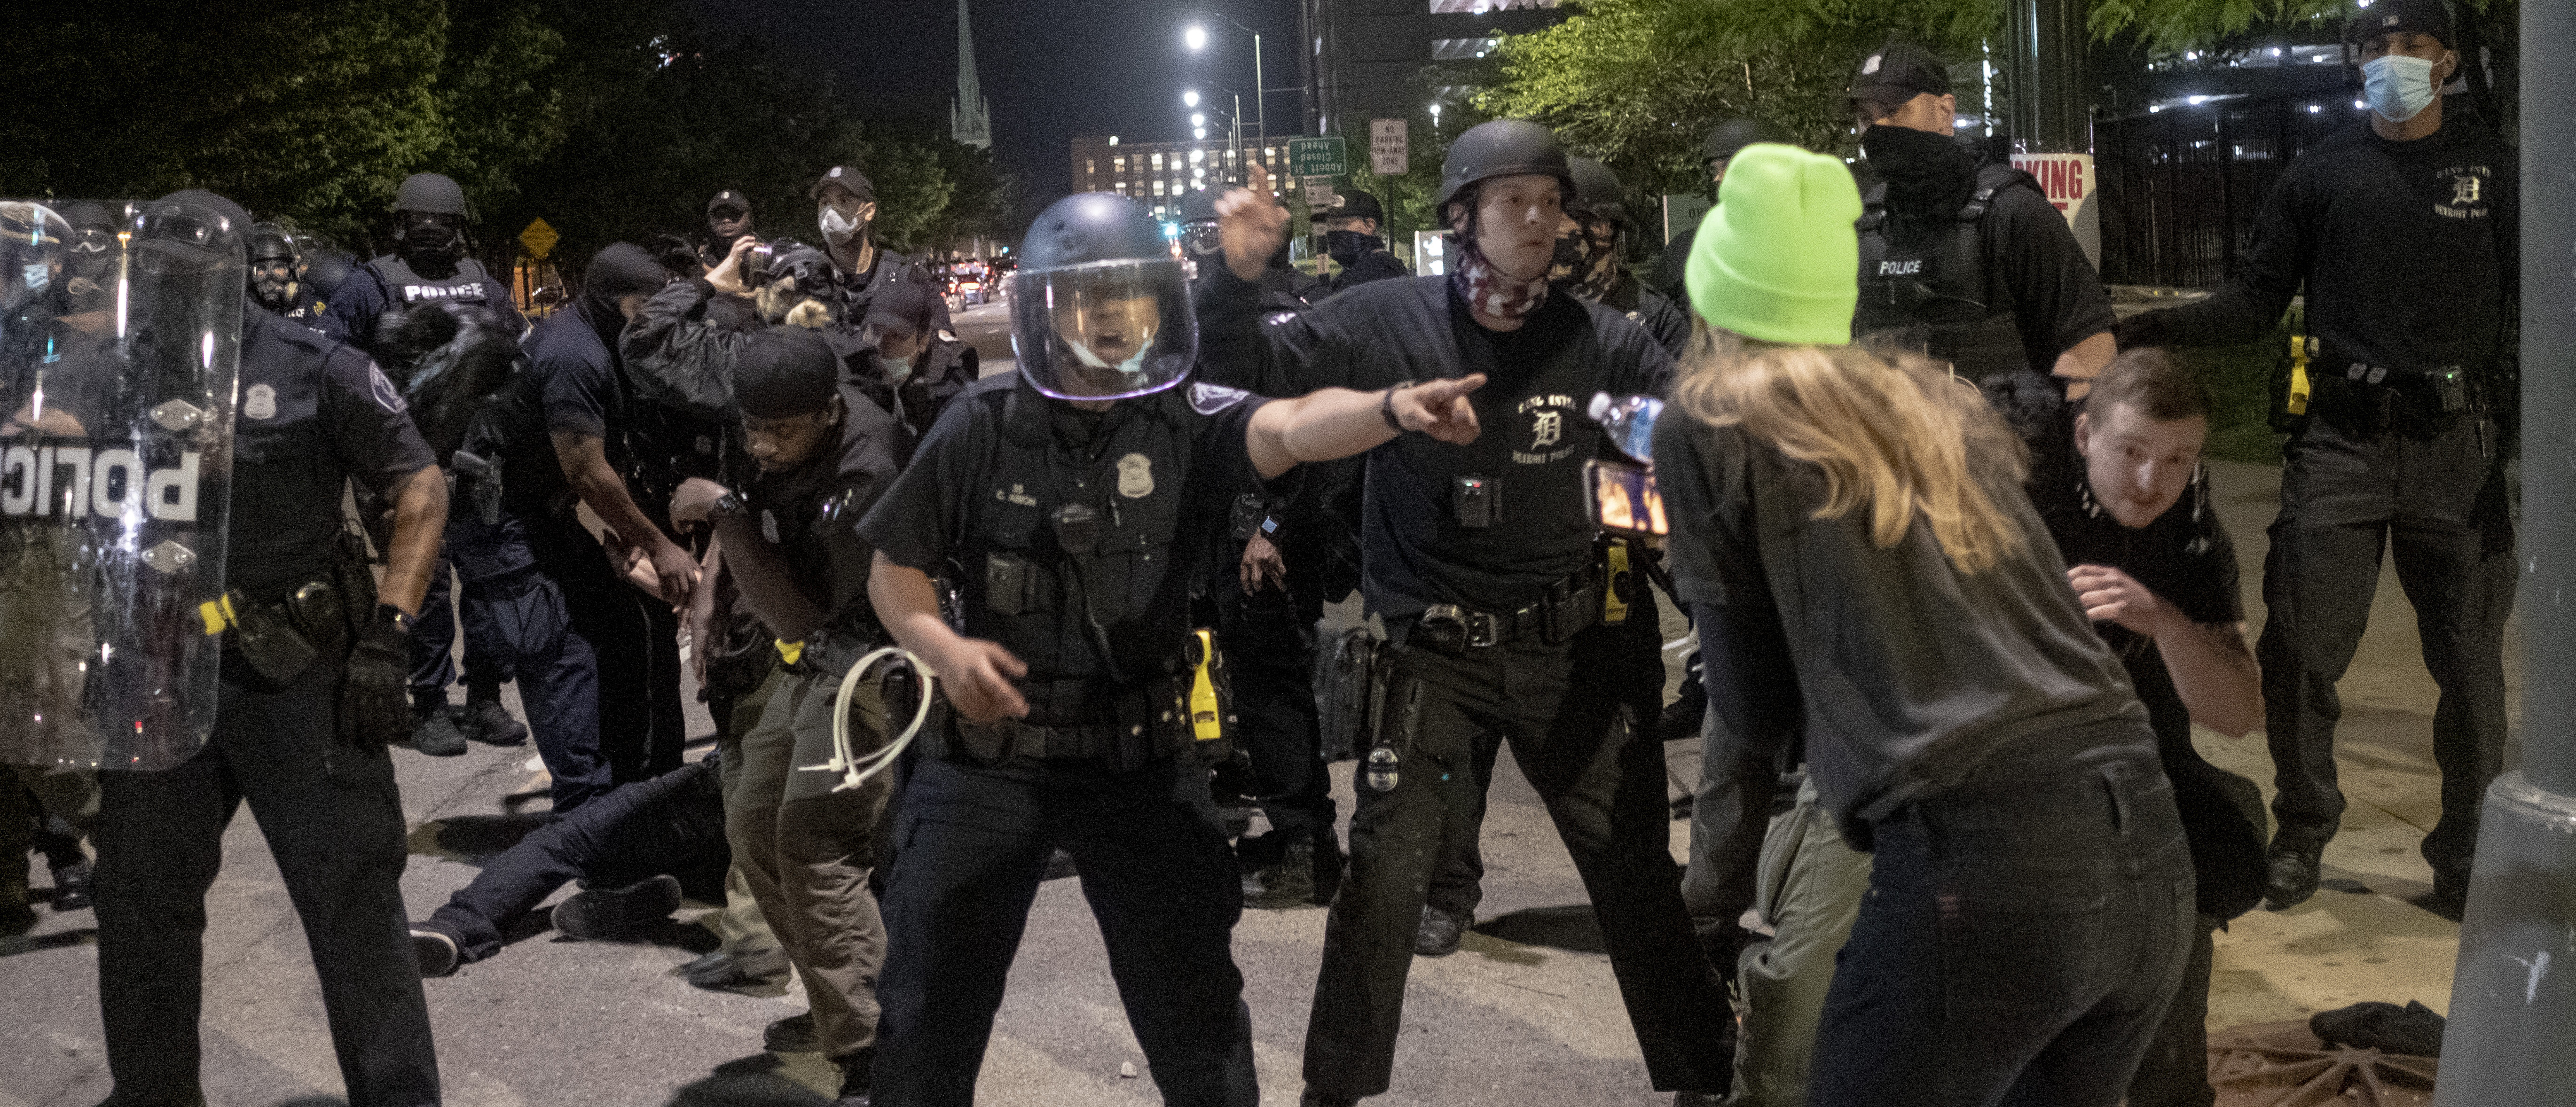 DETROIT, MI - MAY 30: Police officer shouts instructions during a night of clashes between protesters and Detroit Police Officers, violence returned to downtown Detroit as police made dozens of arrests and fired tear gas and rubber bullets at protesters on May 30, 2020 in Detroit, Michigan. The ongoing protests in Detroit come as a nationwide movement to protest the death of 46 year-old George Floyd at the hands of police in Minneapolis, Minnesota. (Photo by Matthew Hatcher/Getty Images)